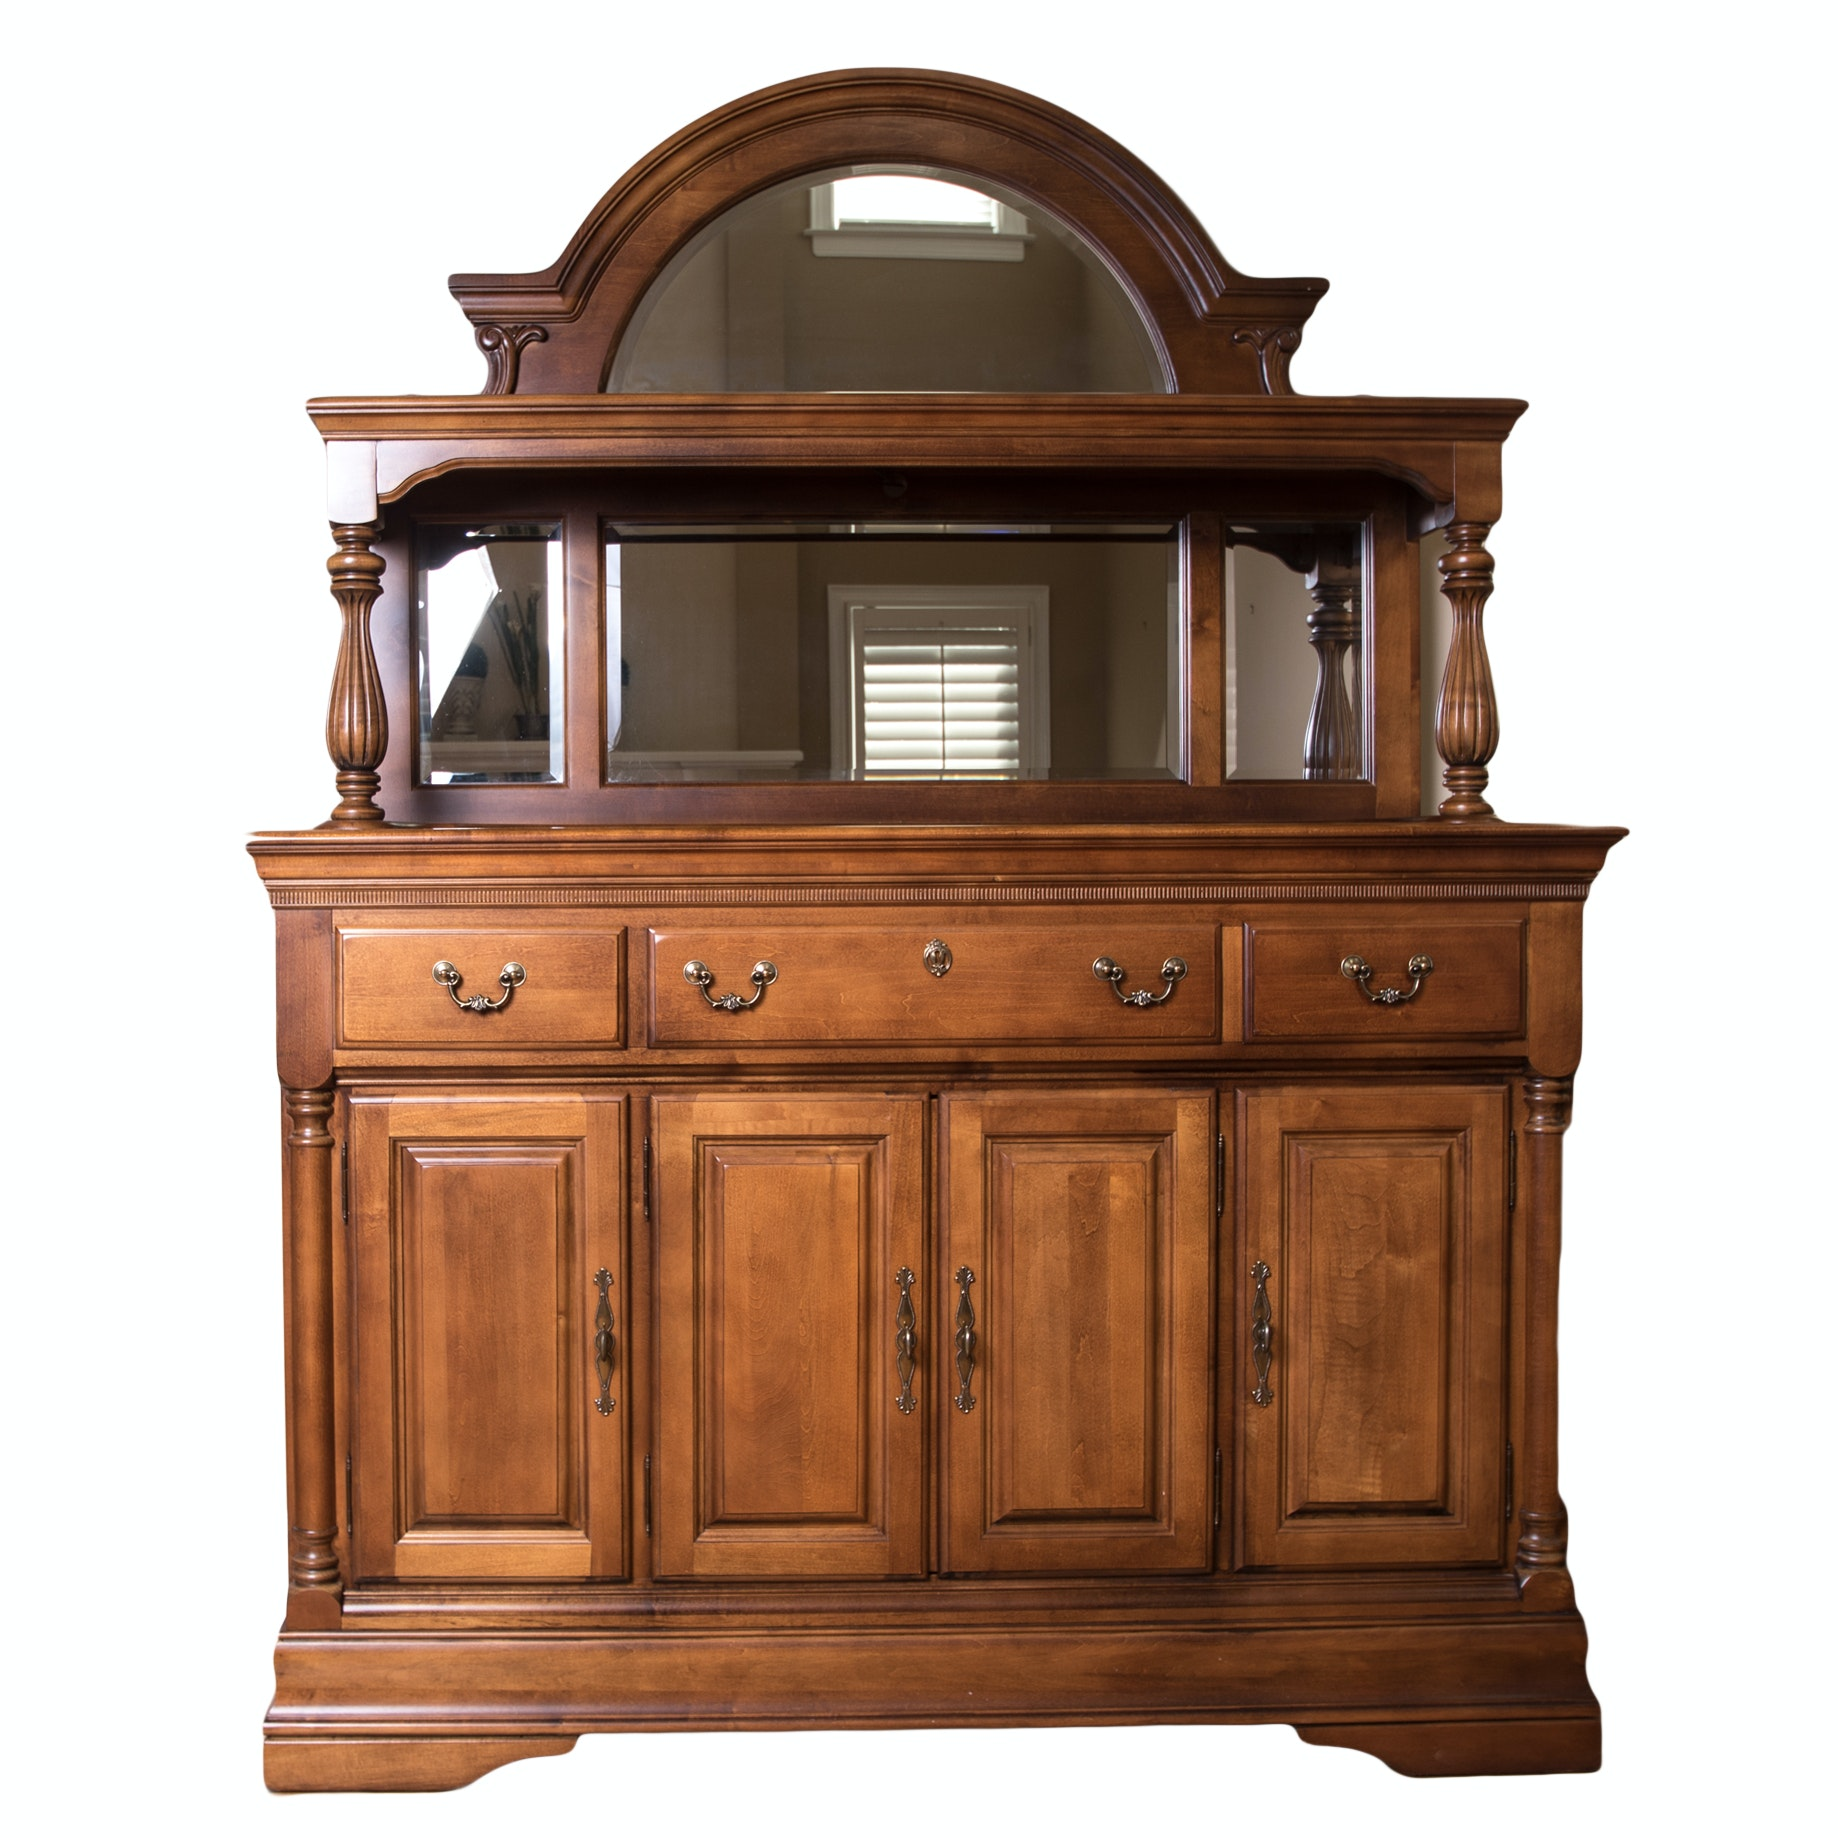 Colonial Revival Buffet by the Sumter Cabinet Co.